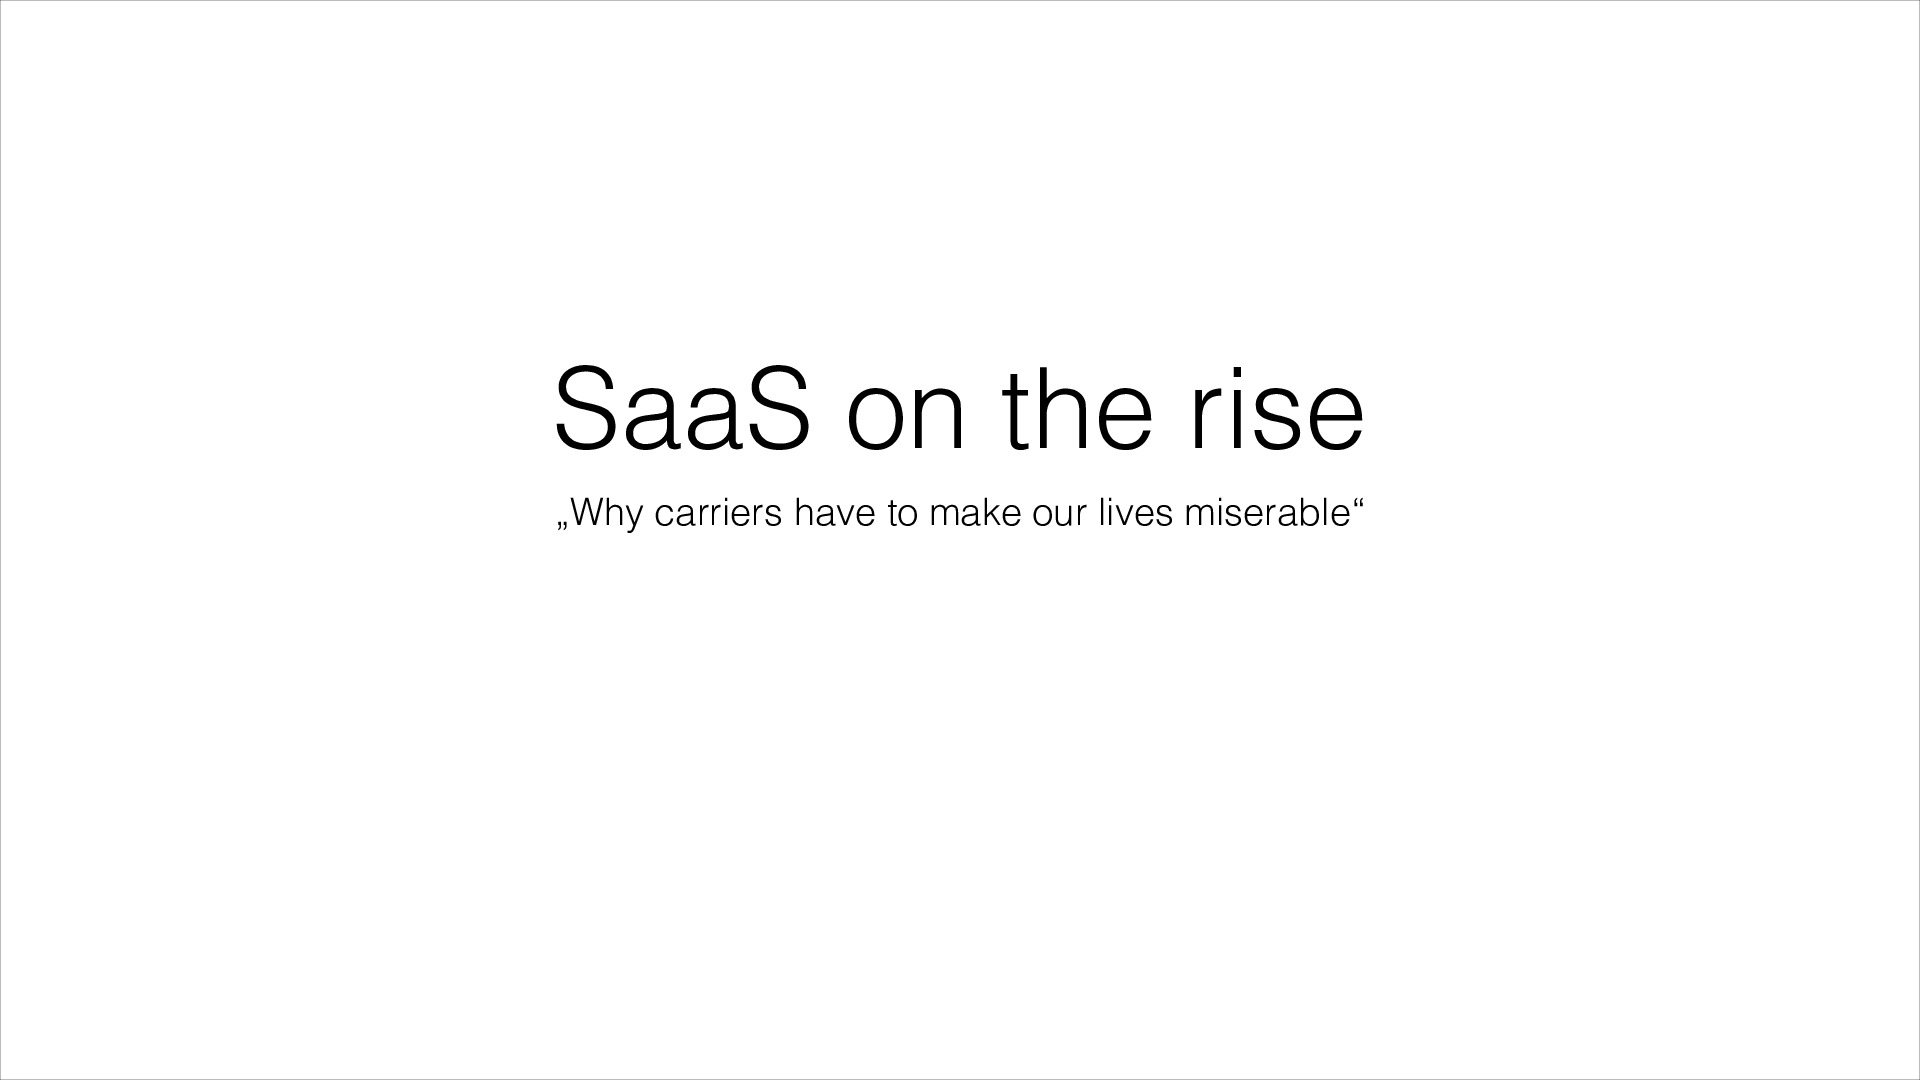 SaaS on the rise or